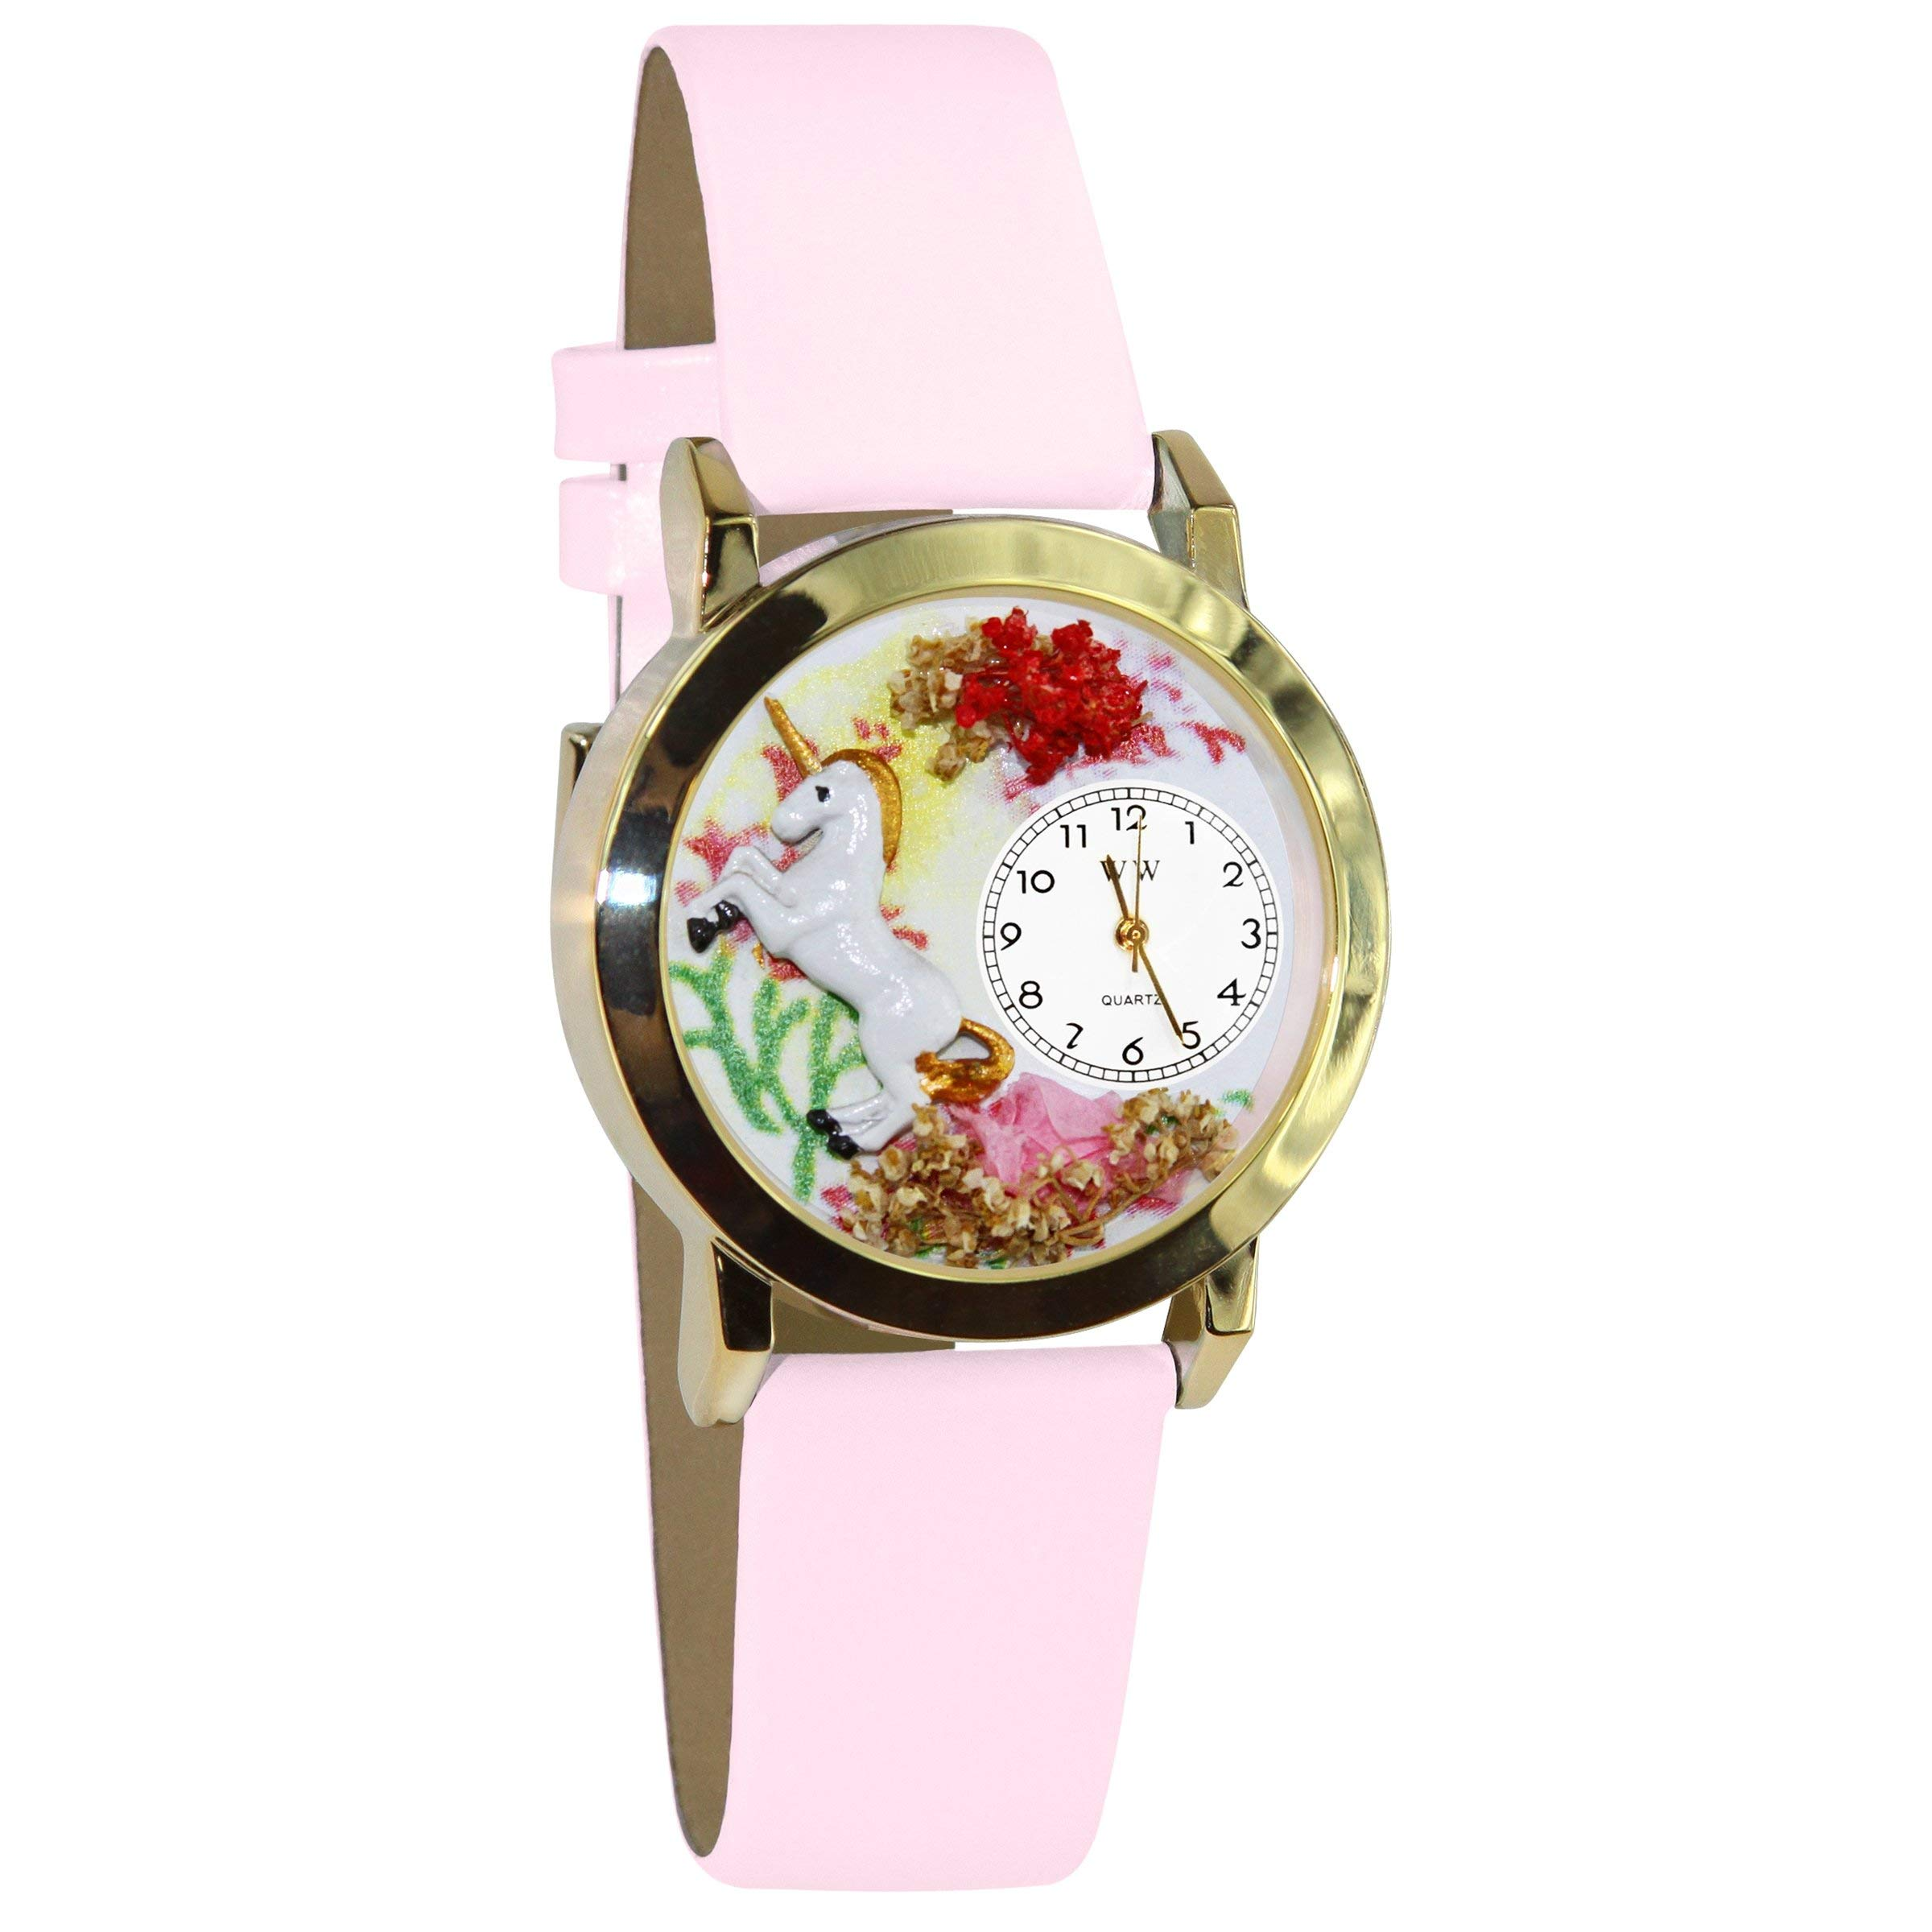 CDM product Whimsical Watches Kids' C0420001 Classic Gold Unicorn Pink Leather And Goldtone Watch big image